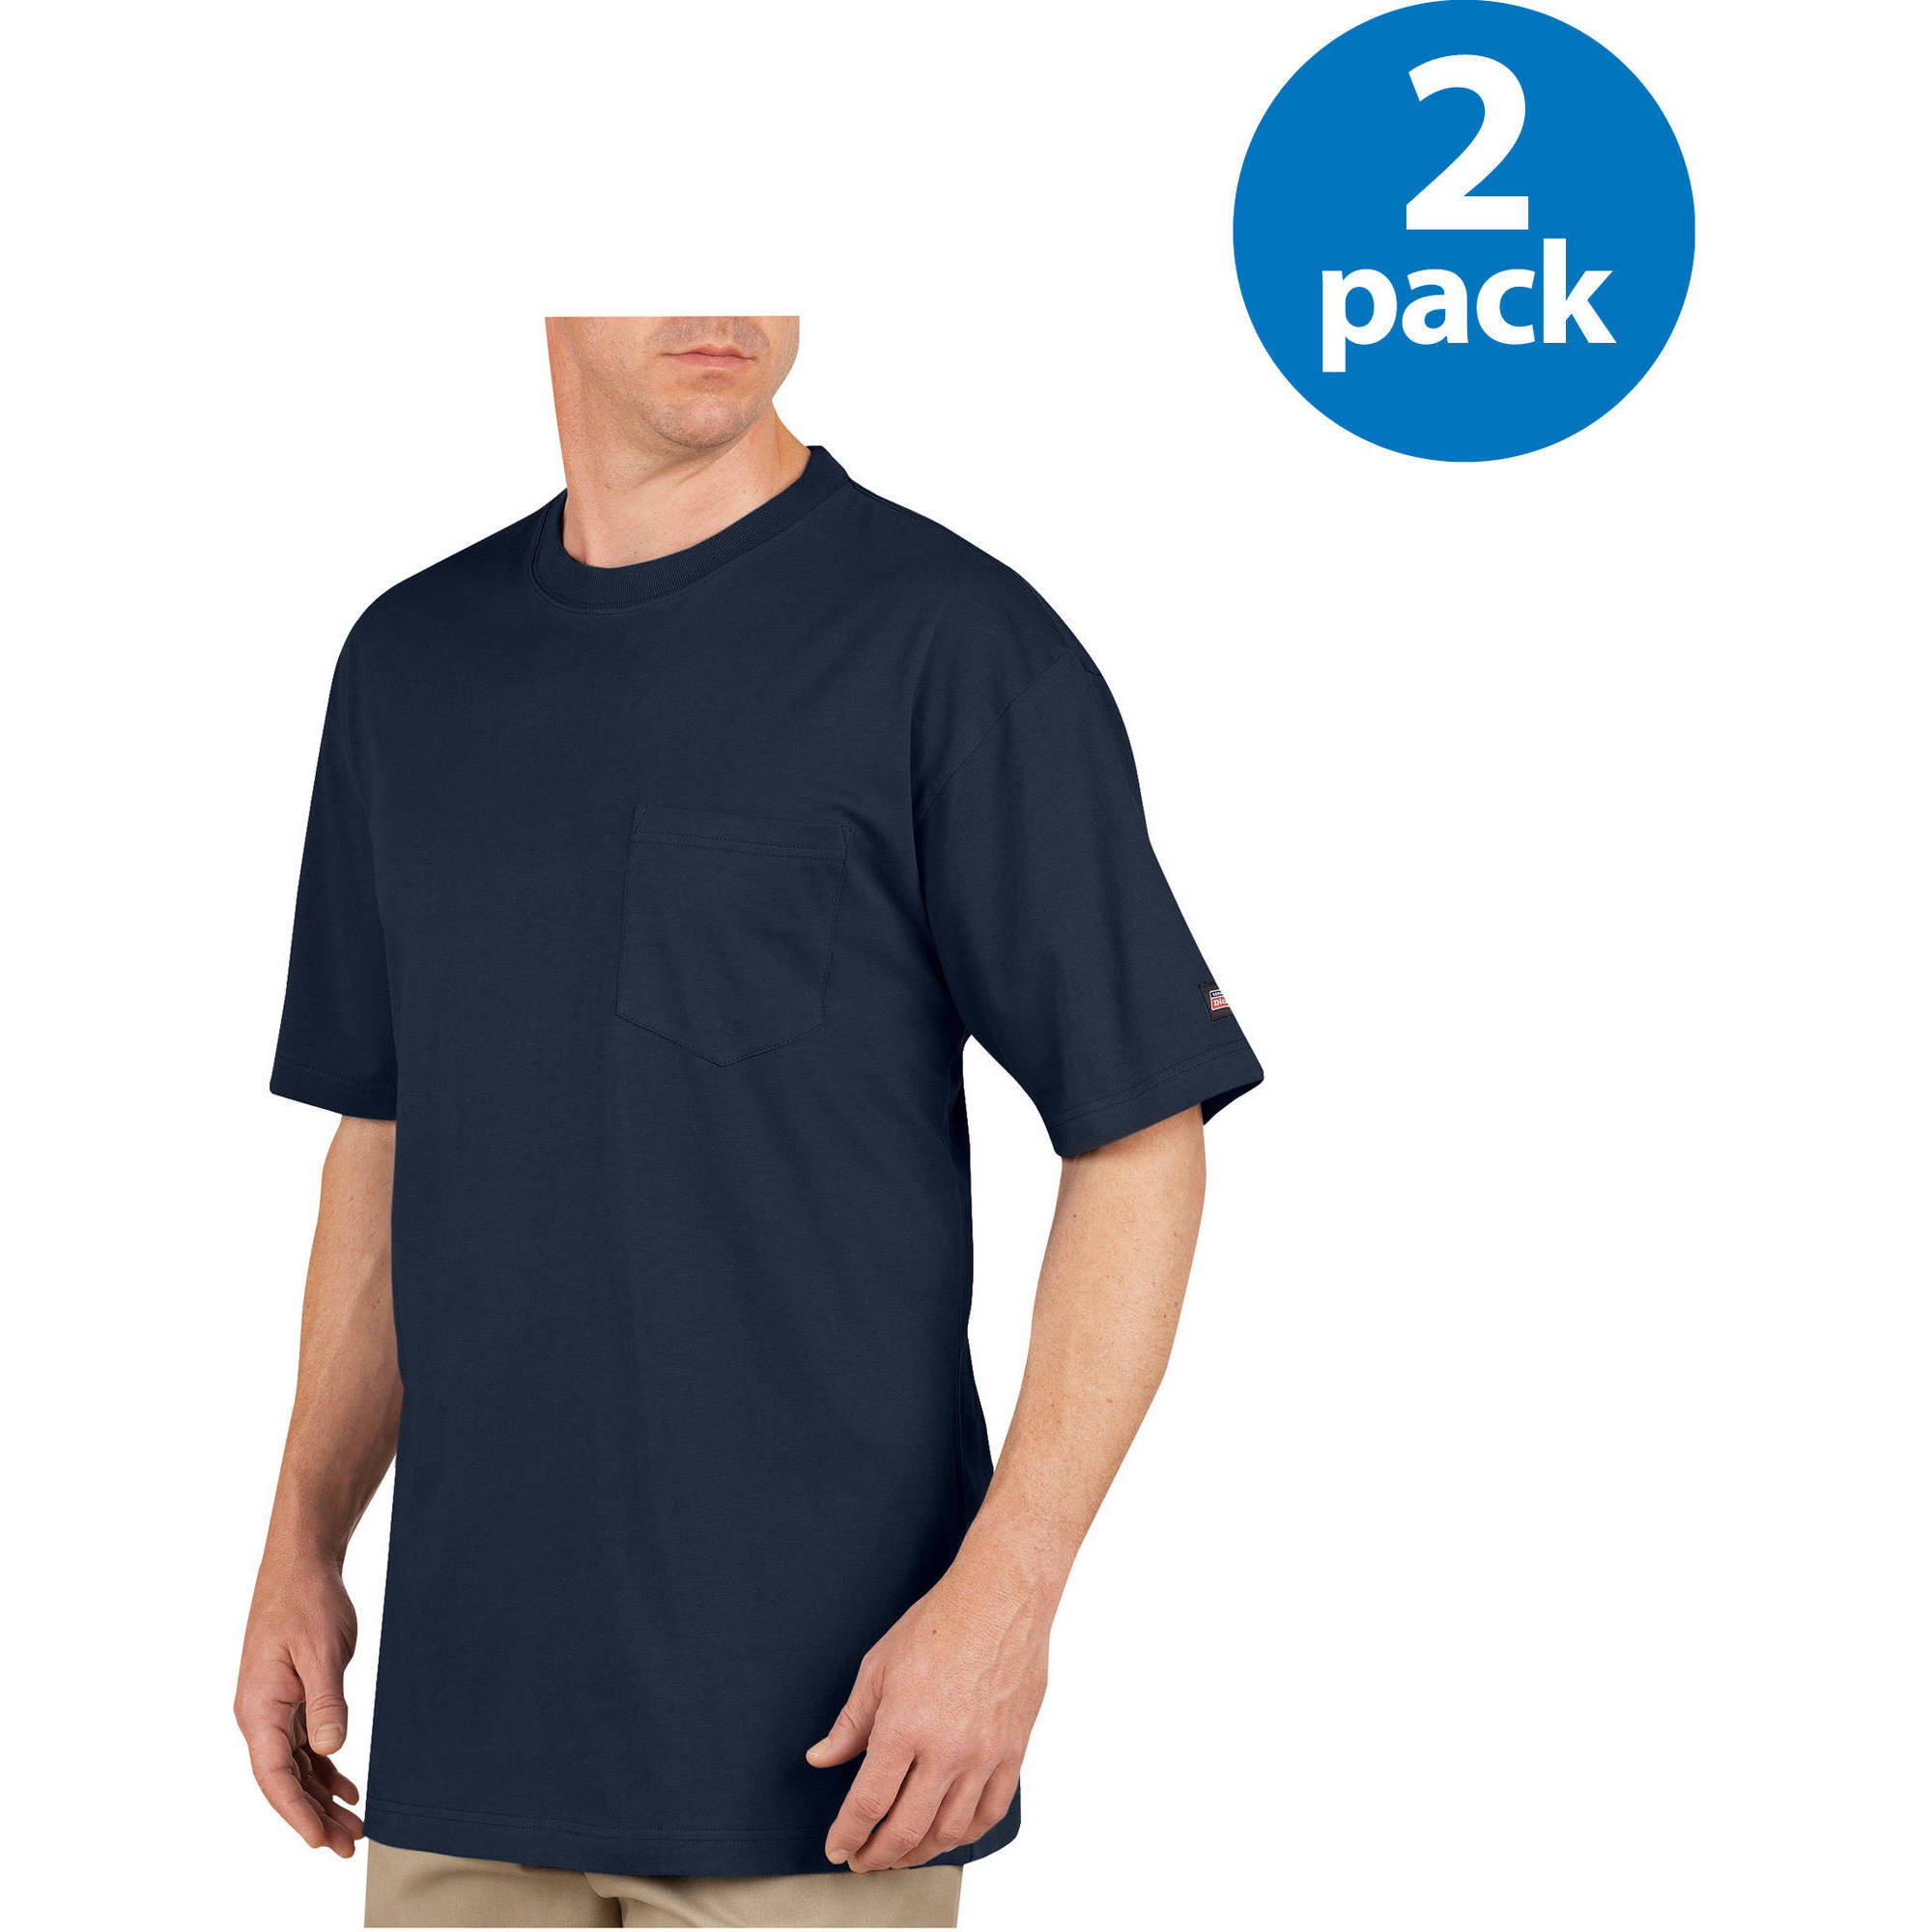 Genuine Dickies Big and Tall Men's Heavy Weight Pocket Tee- 2 pack